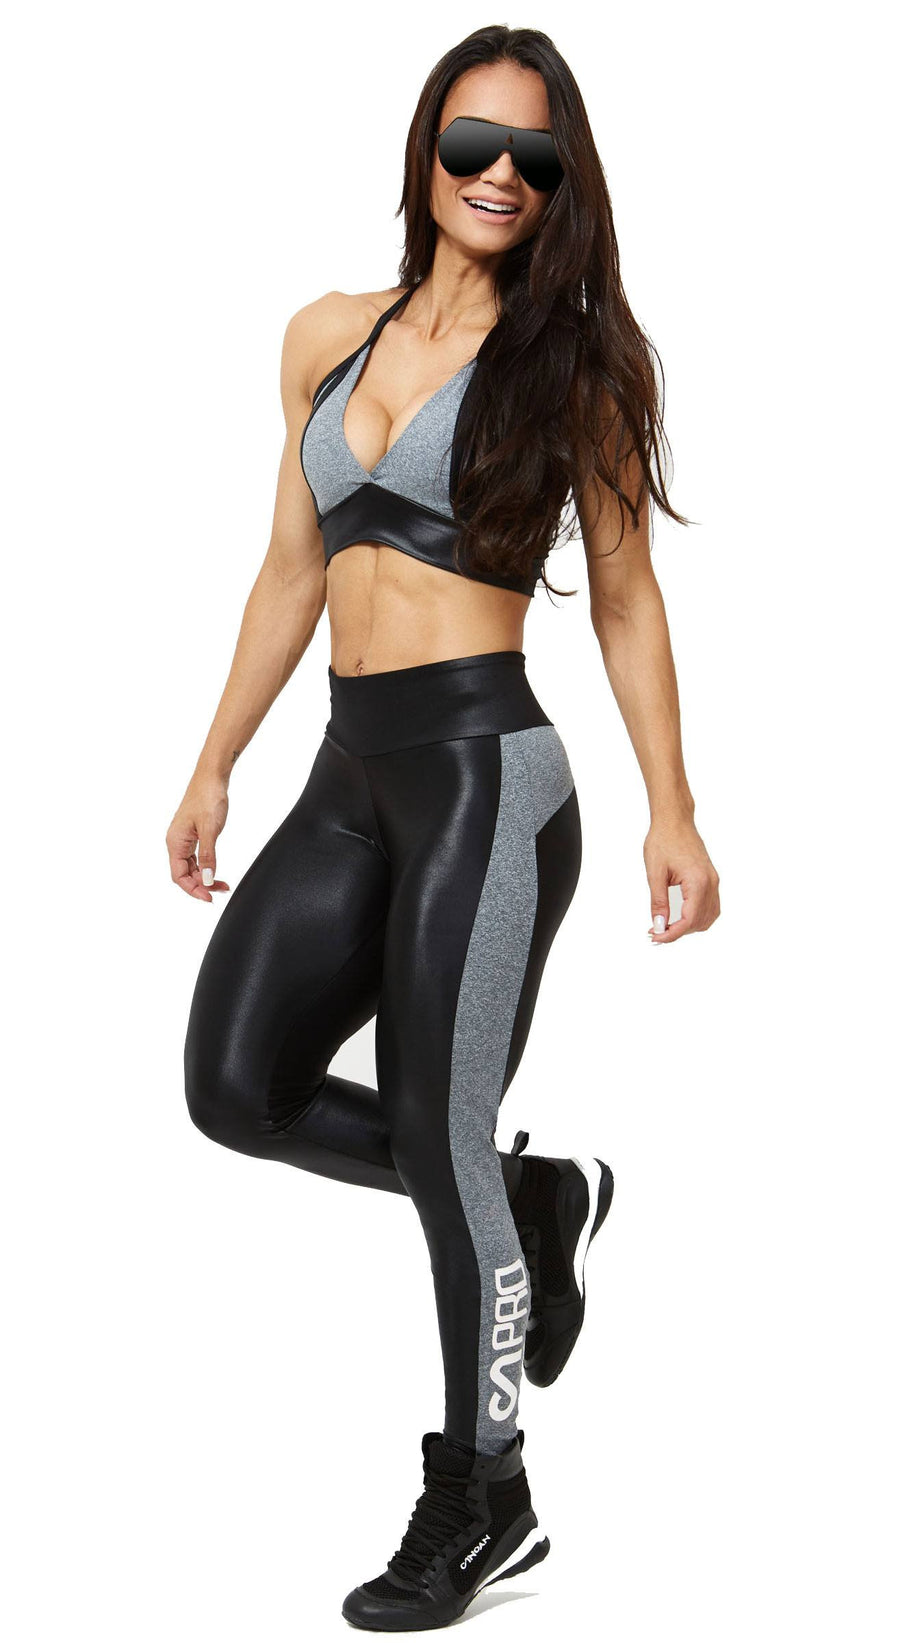 Brazilian Sports Bra - Fusion Black & Gray